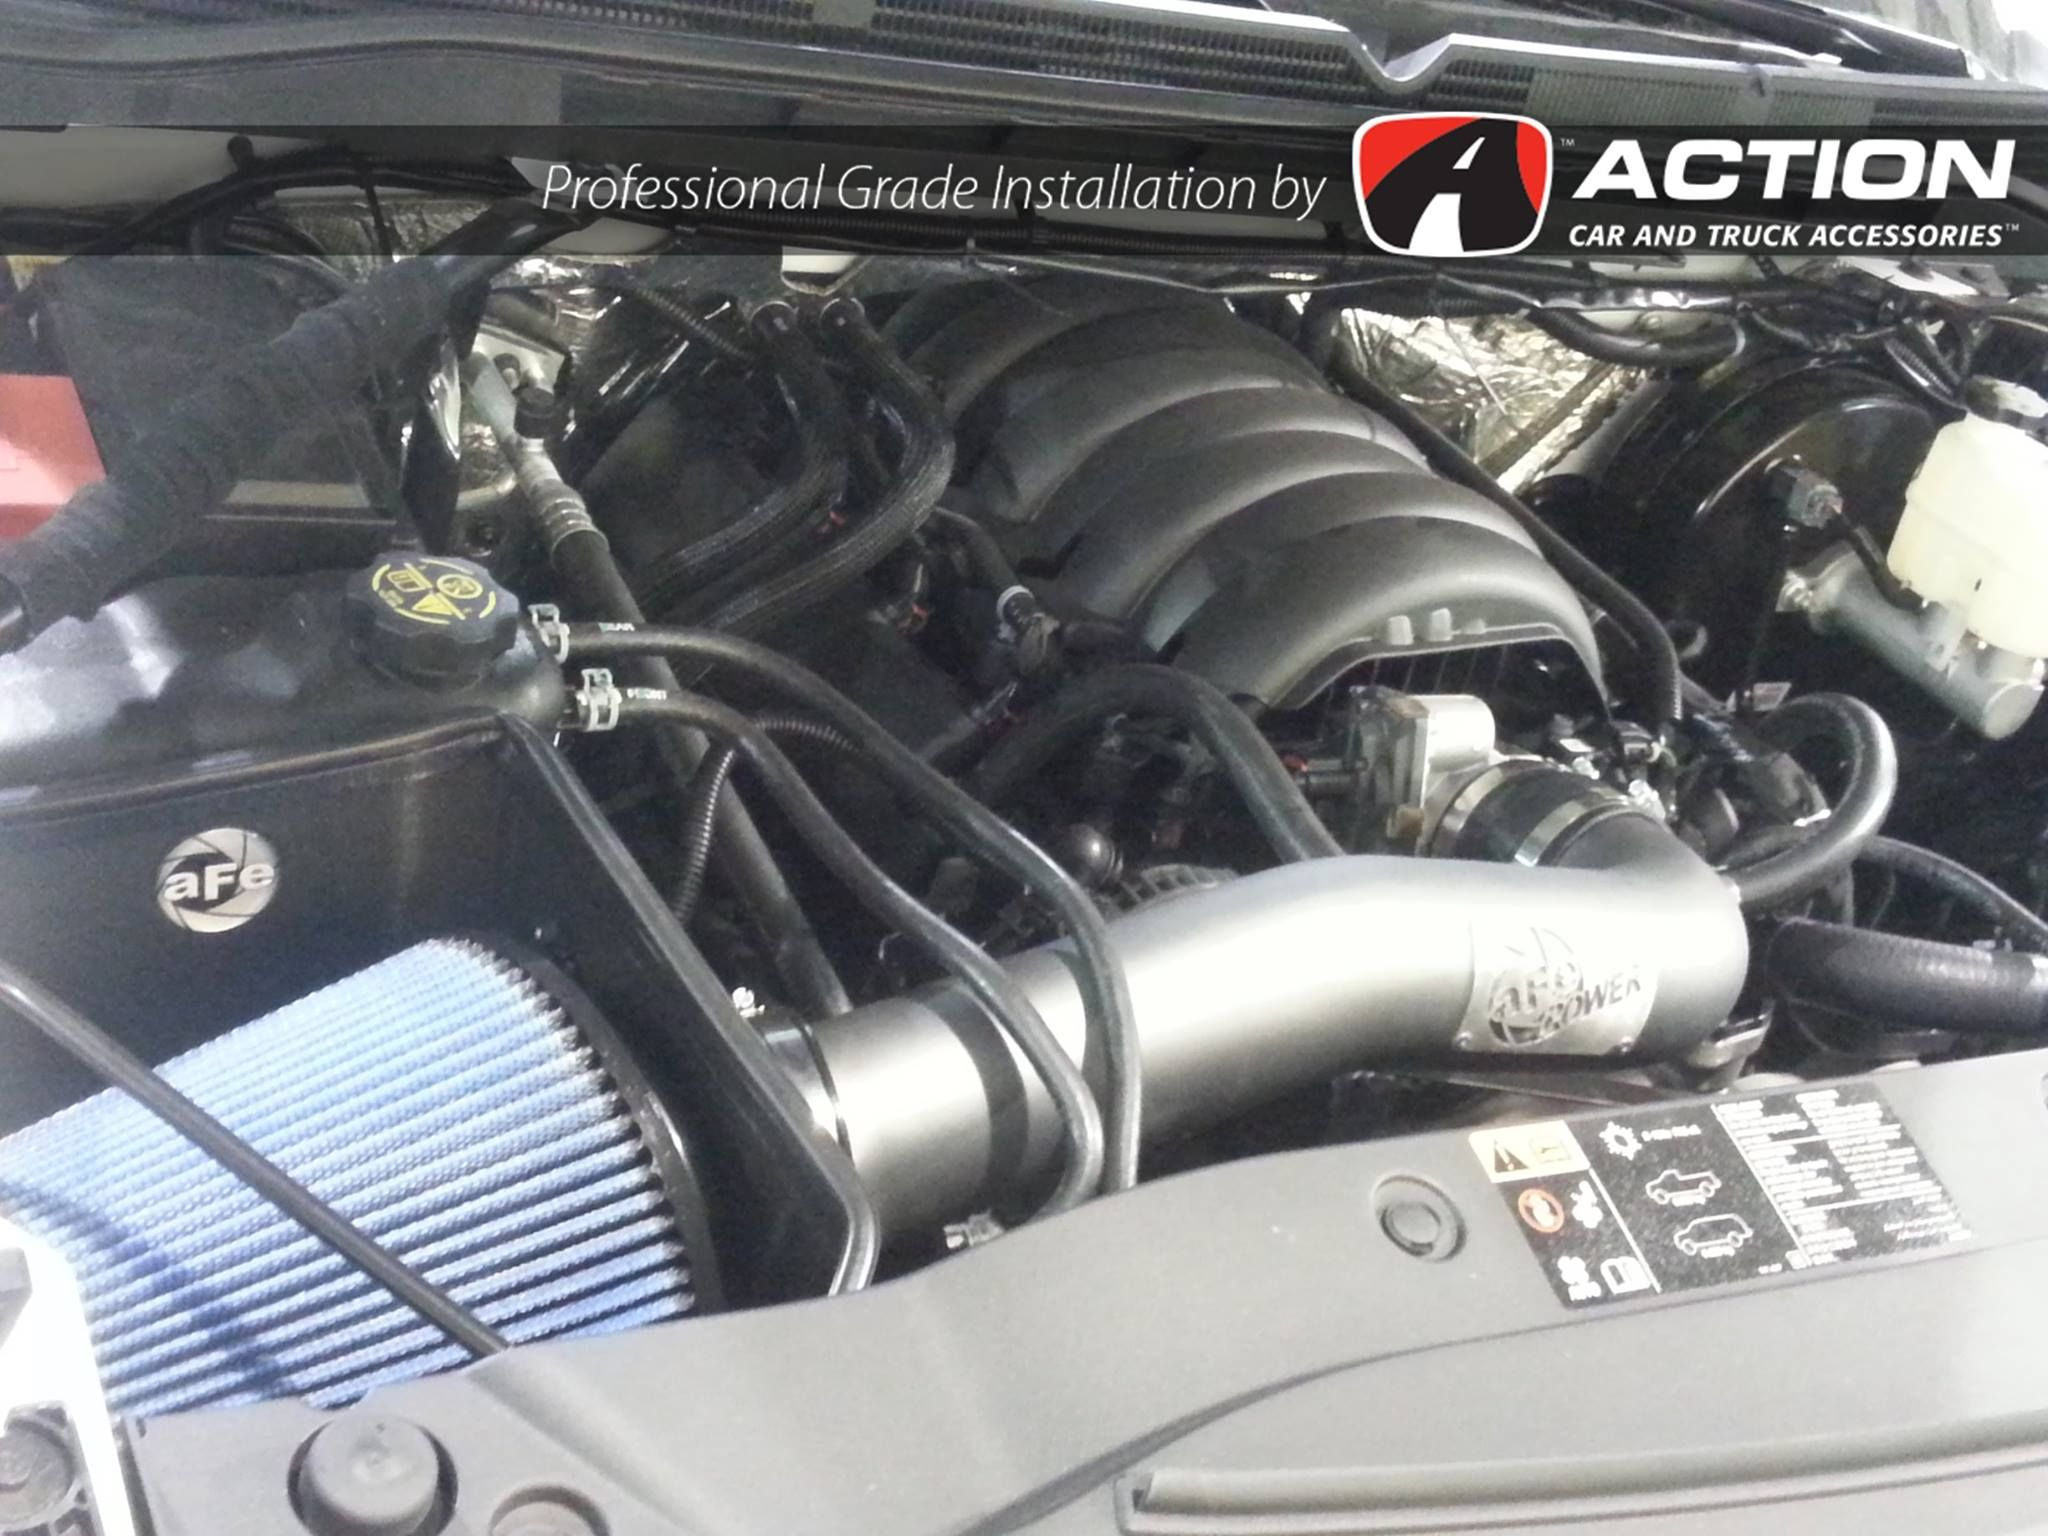 Cold air intake by aFe POWER Installed in a 2016 GMC